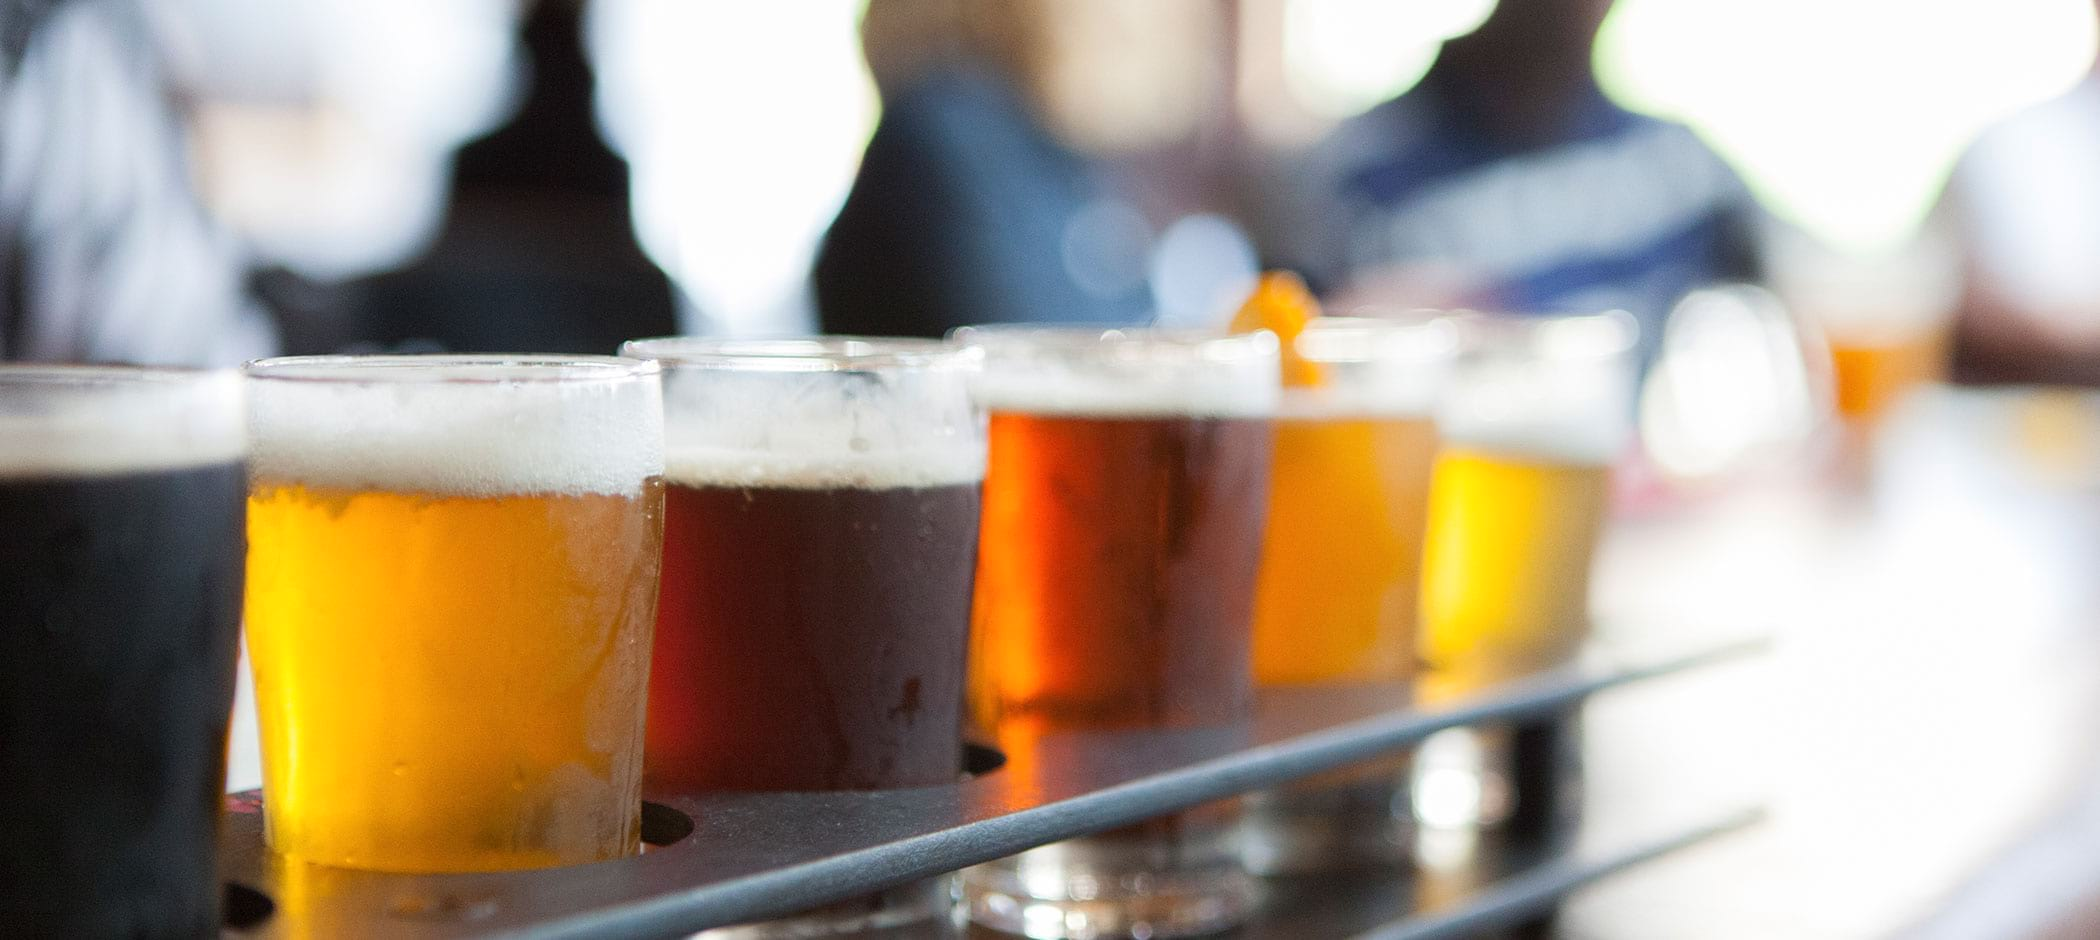 5 Places to Pick Up Craft Beer in Detroit